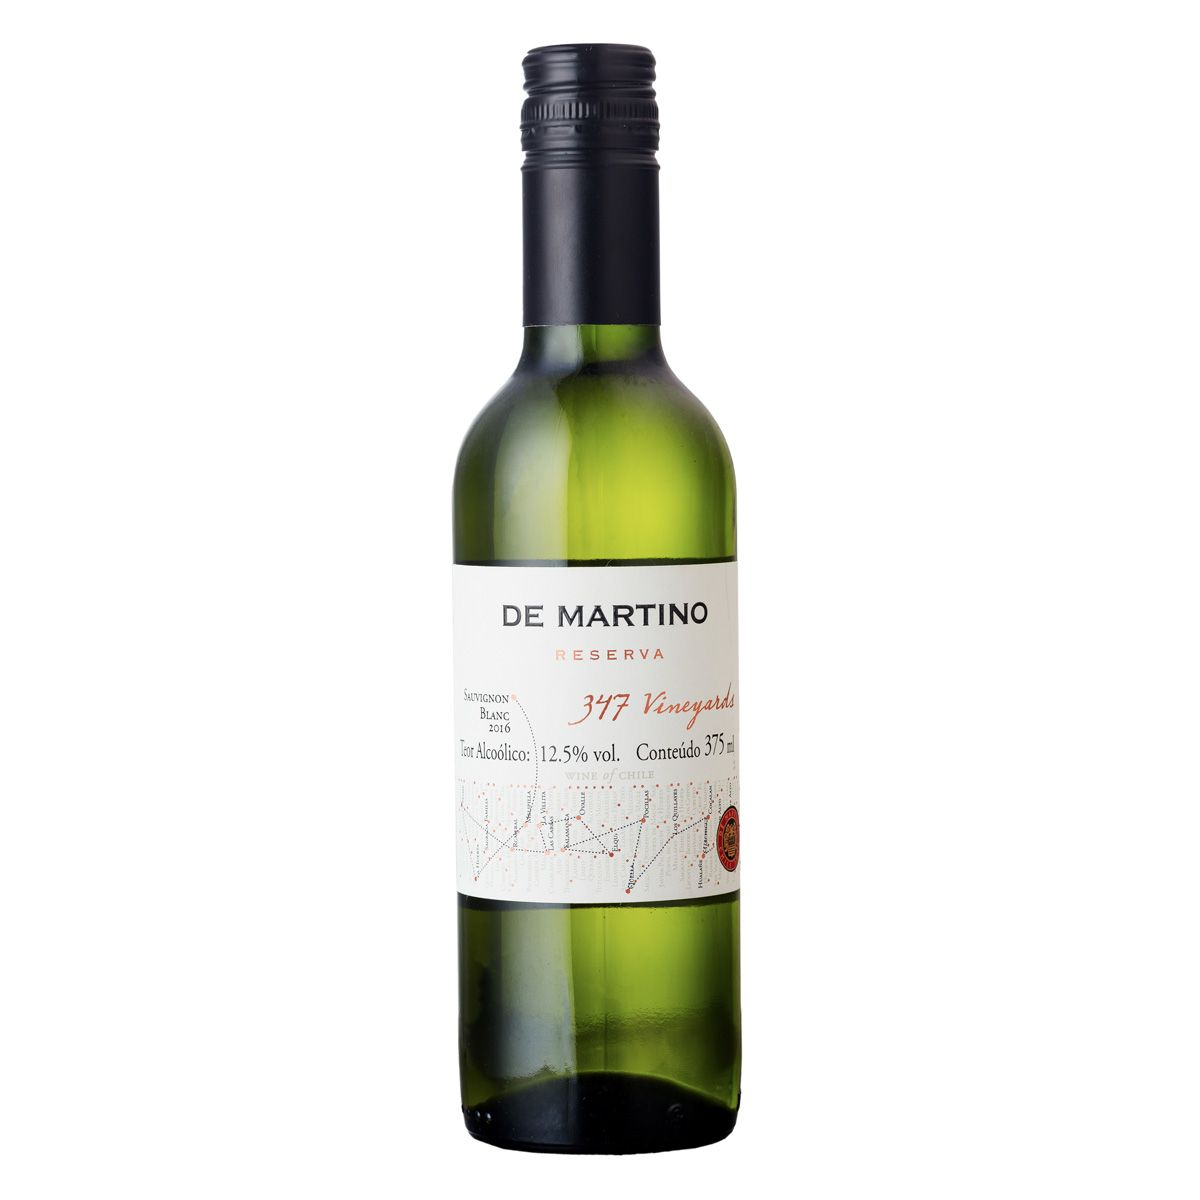 De Martino Sauvignon Blanc Reserva 347 Vineyards 375ml